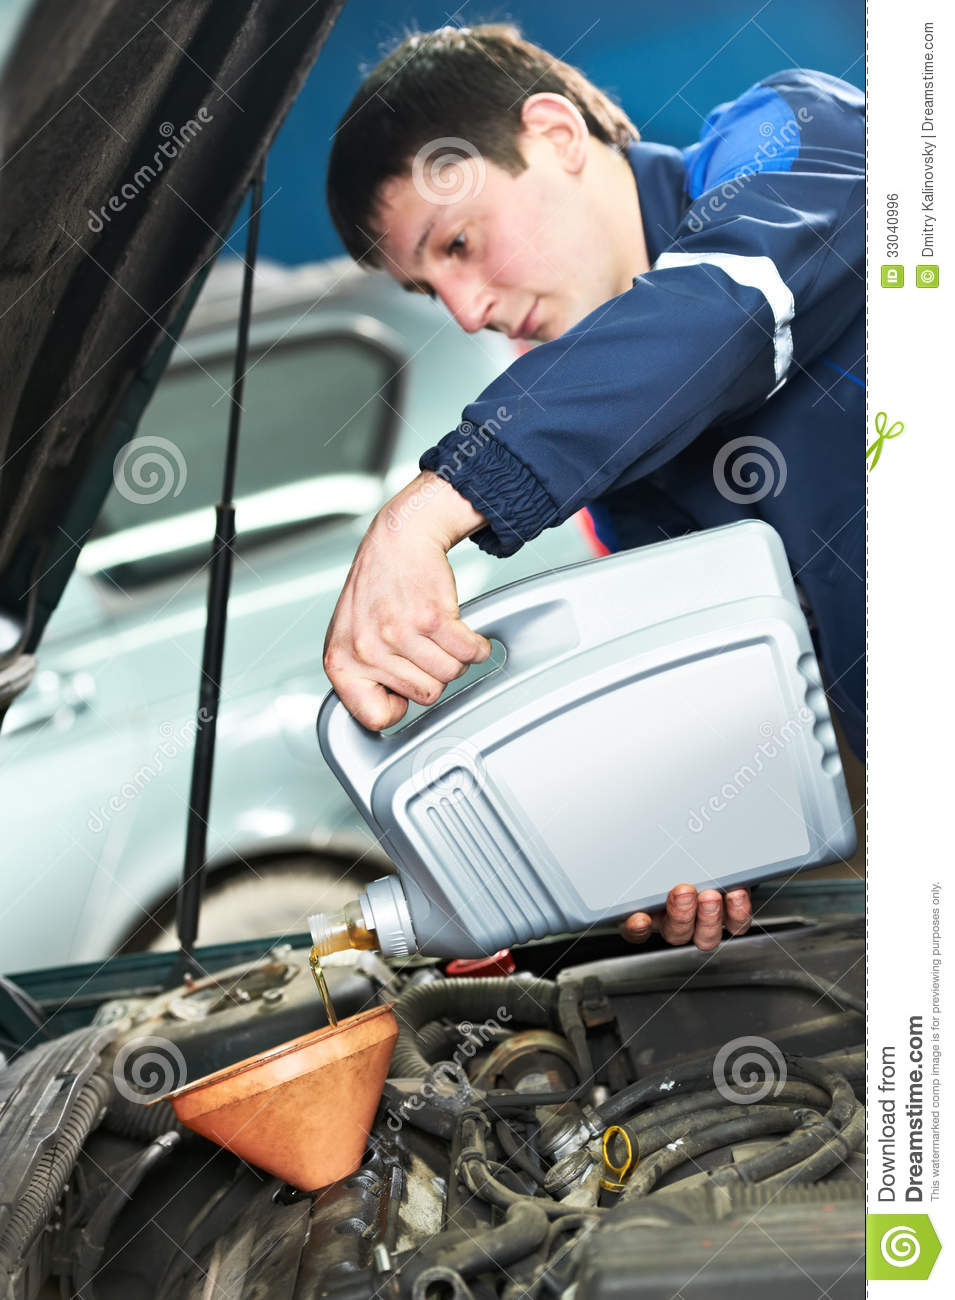 Car mechanic pouring oil into motor engine stock photo for Motor vehicle repair license